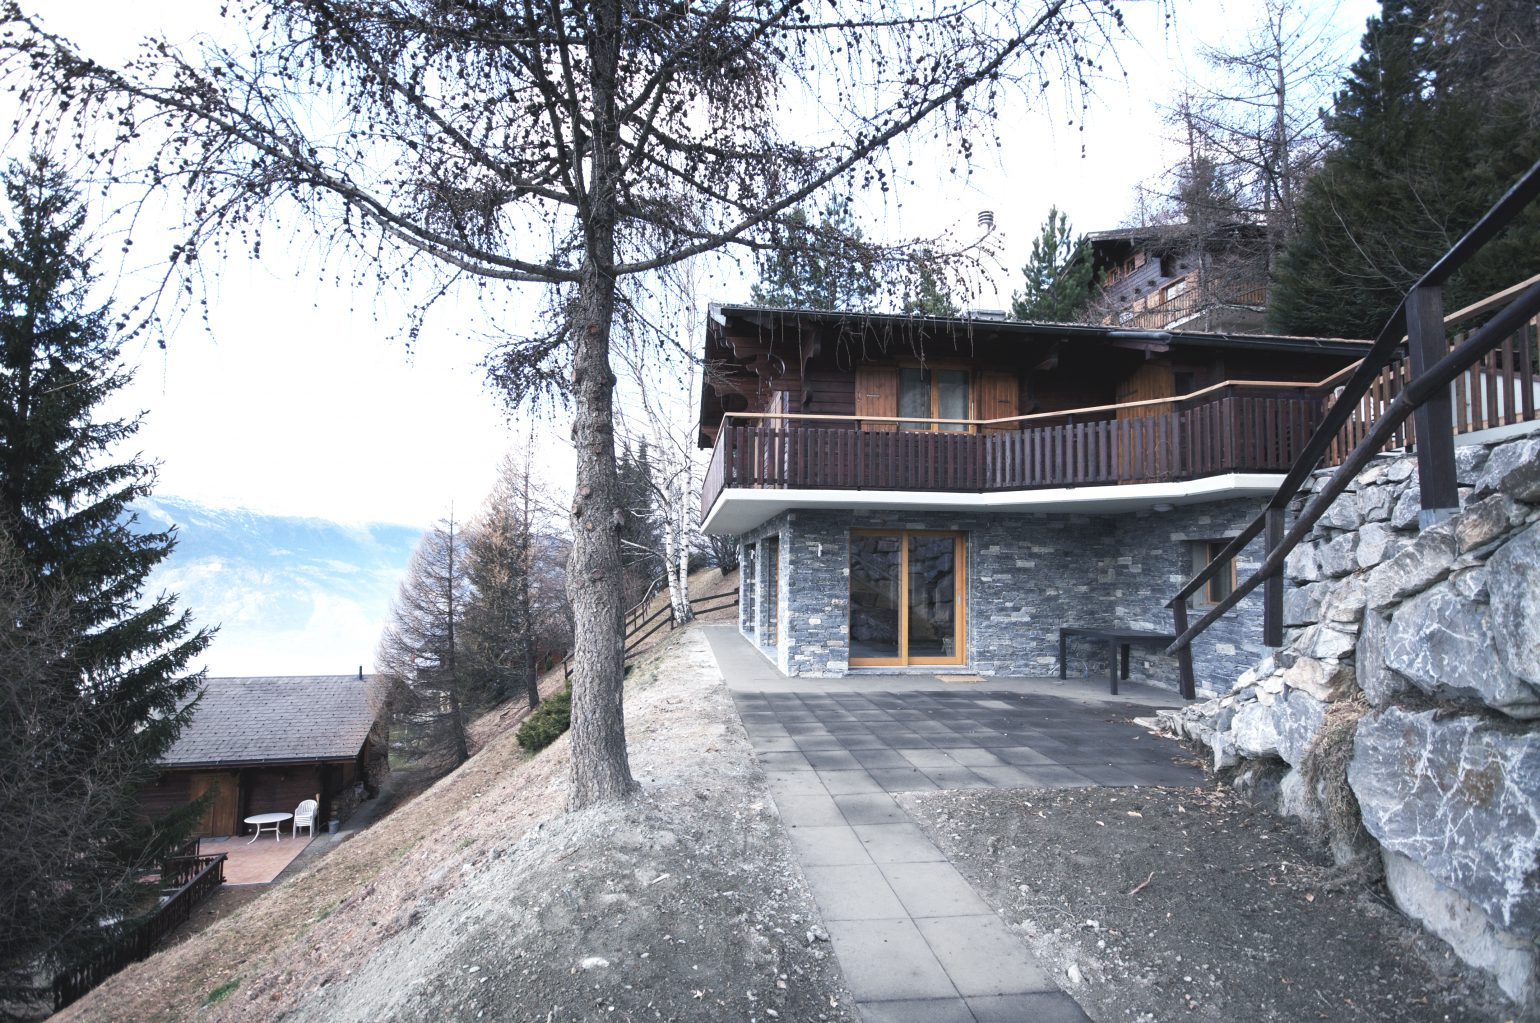 transformation-rénovation-chalet-coulon-veysonnaz-françois-meyer-architecture-sion-08